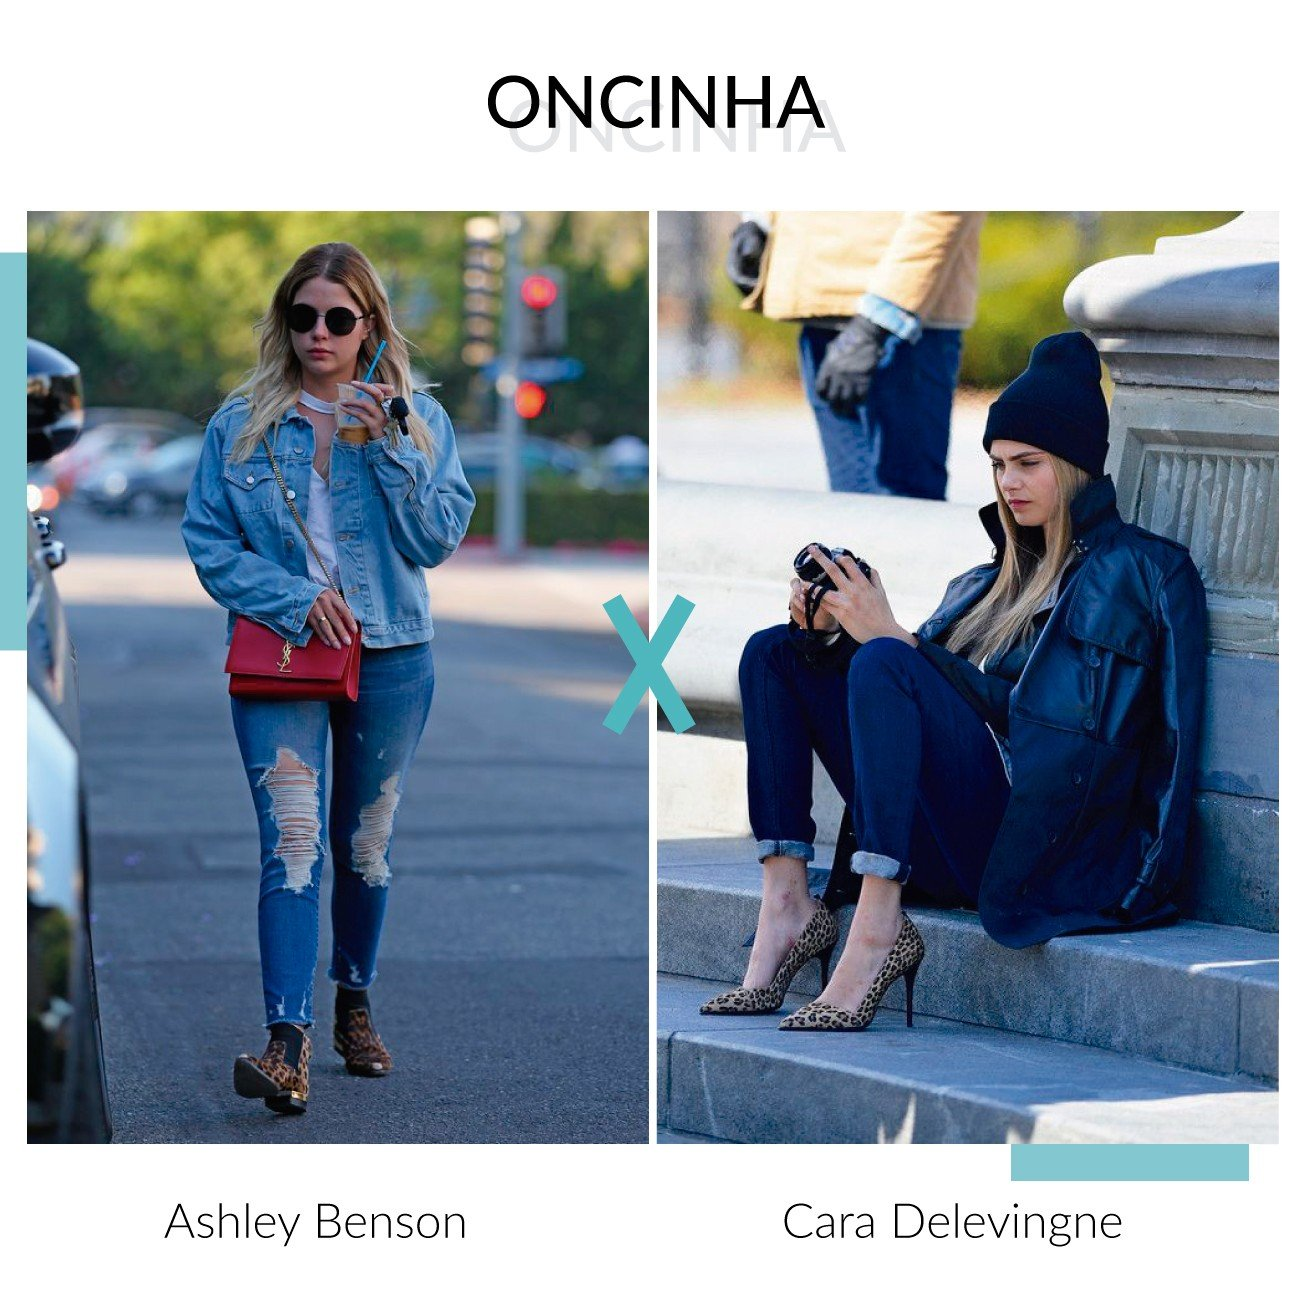 oncinha ashley benson e cara delevingne